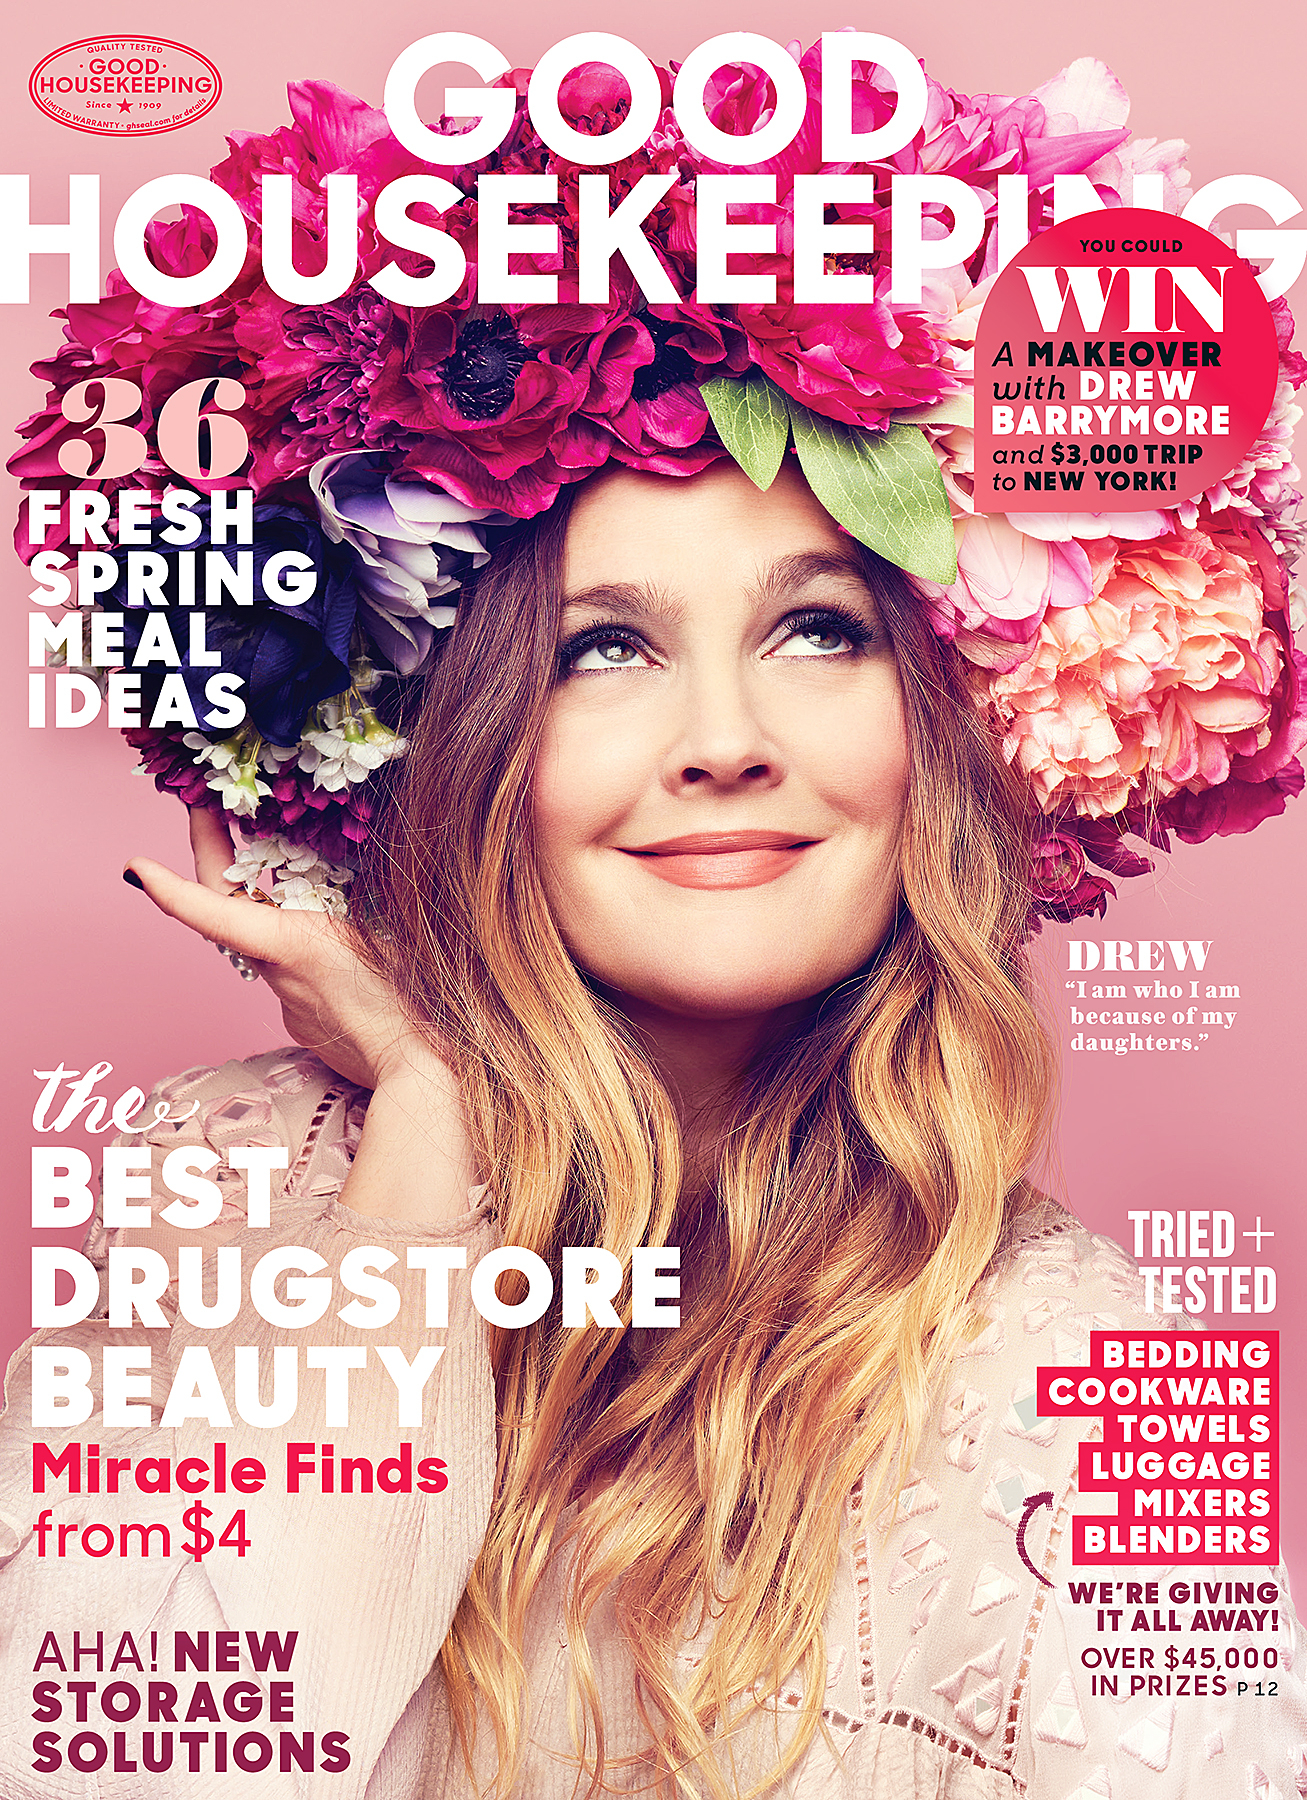 Drew Barrymore on the cover of Good Housekeeping